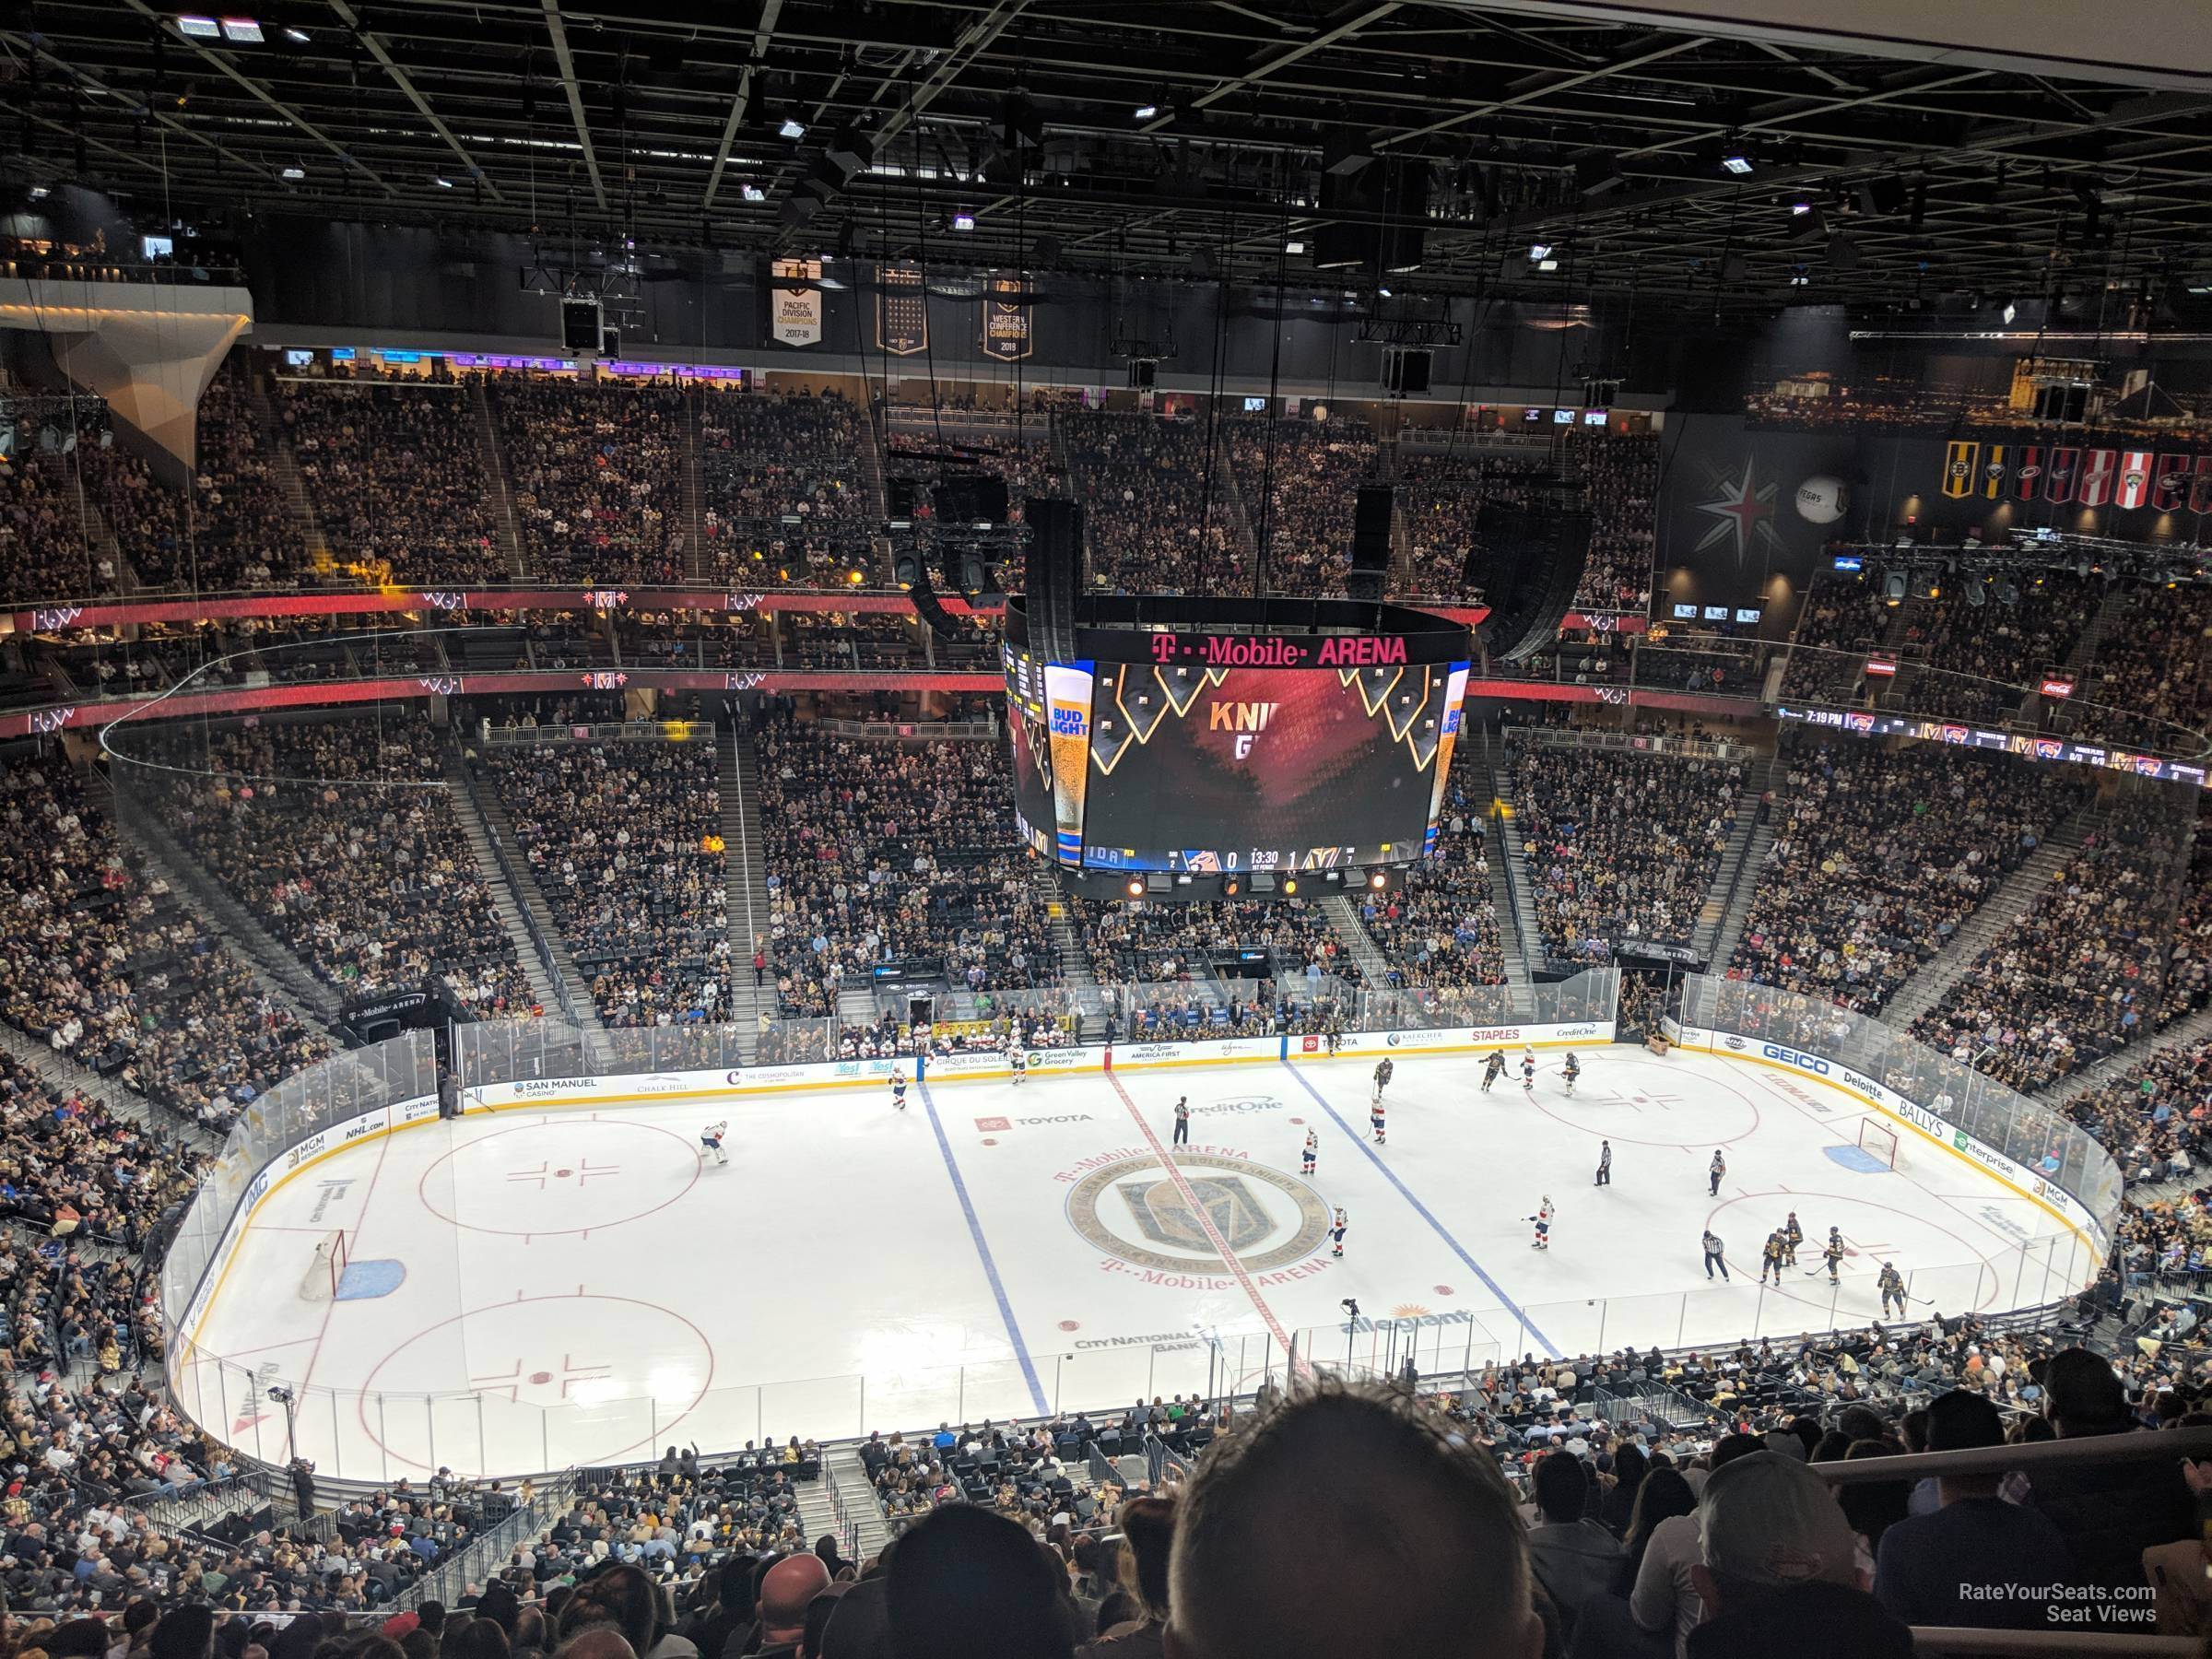 T-Mobile Arena Section 221 - Vegas Golden Knights - RateYourSeats com